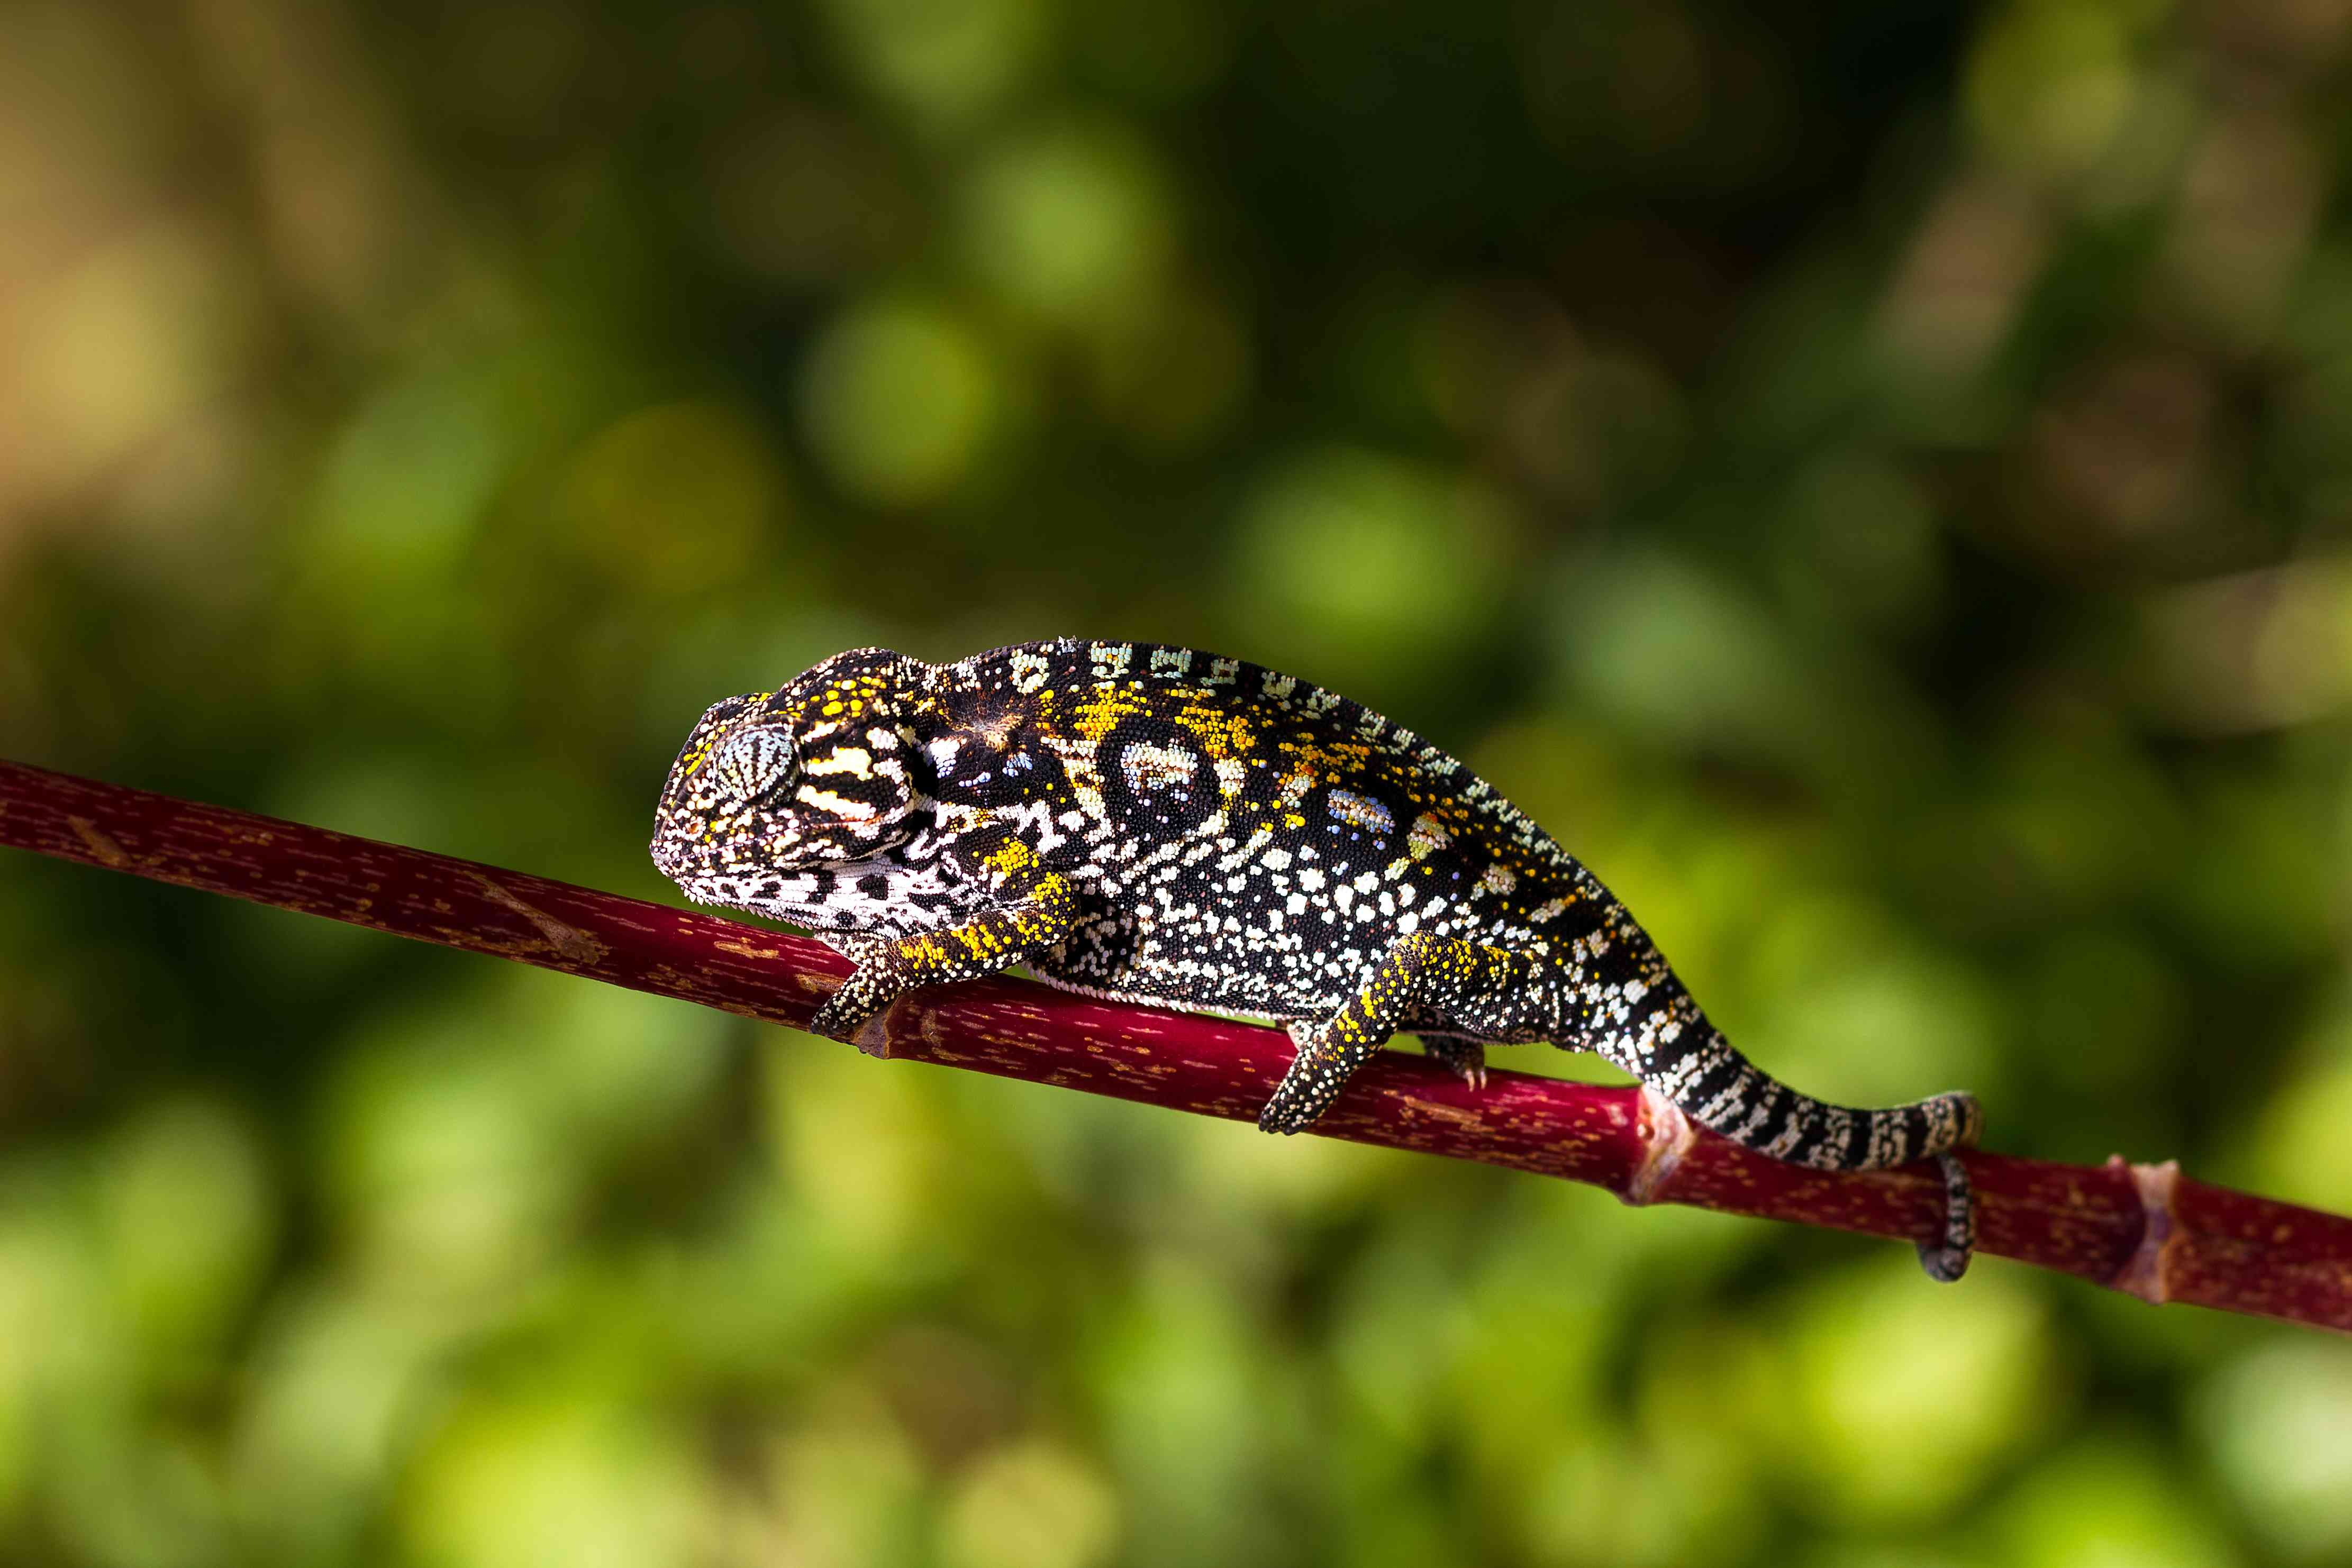 Jewelled chameleon on a tree branch